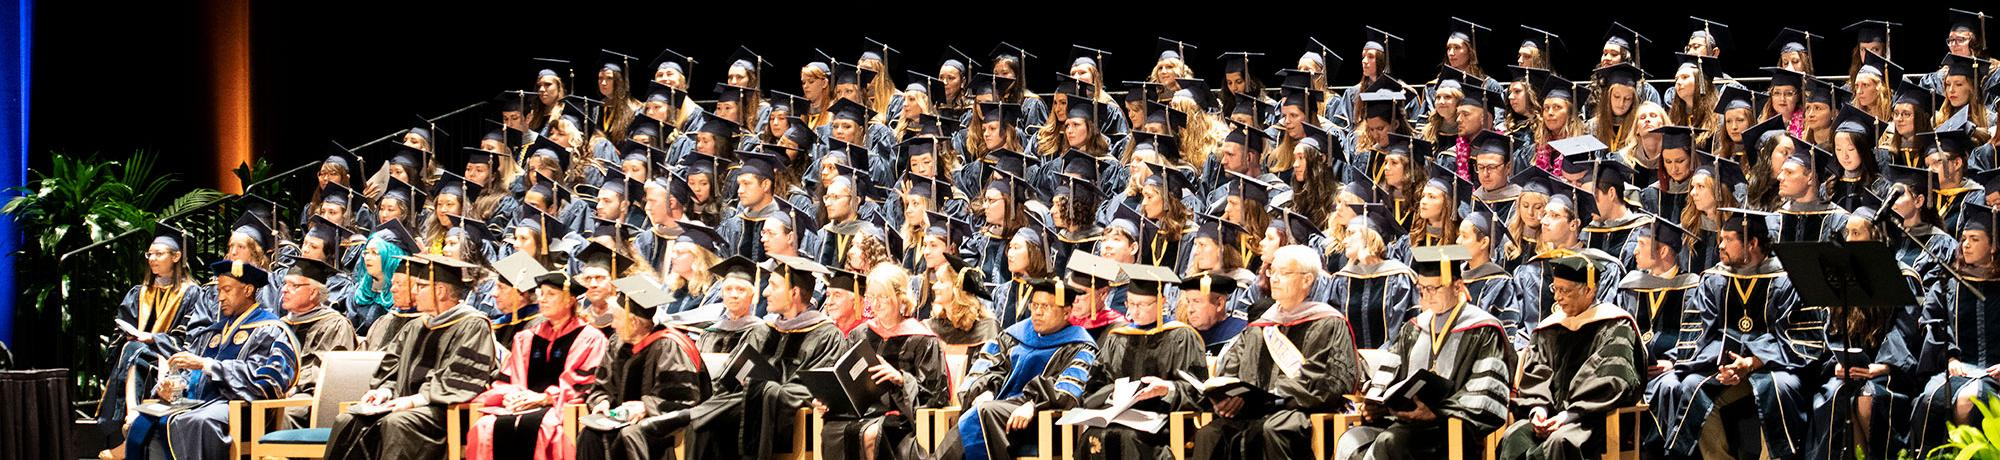 2020 Virtual Commencement Ceremony